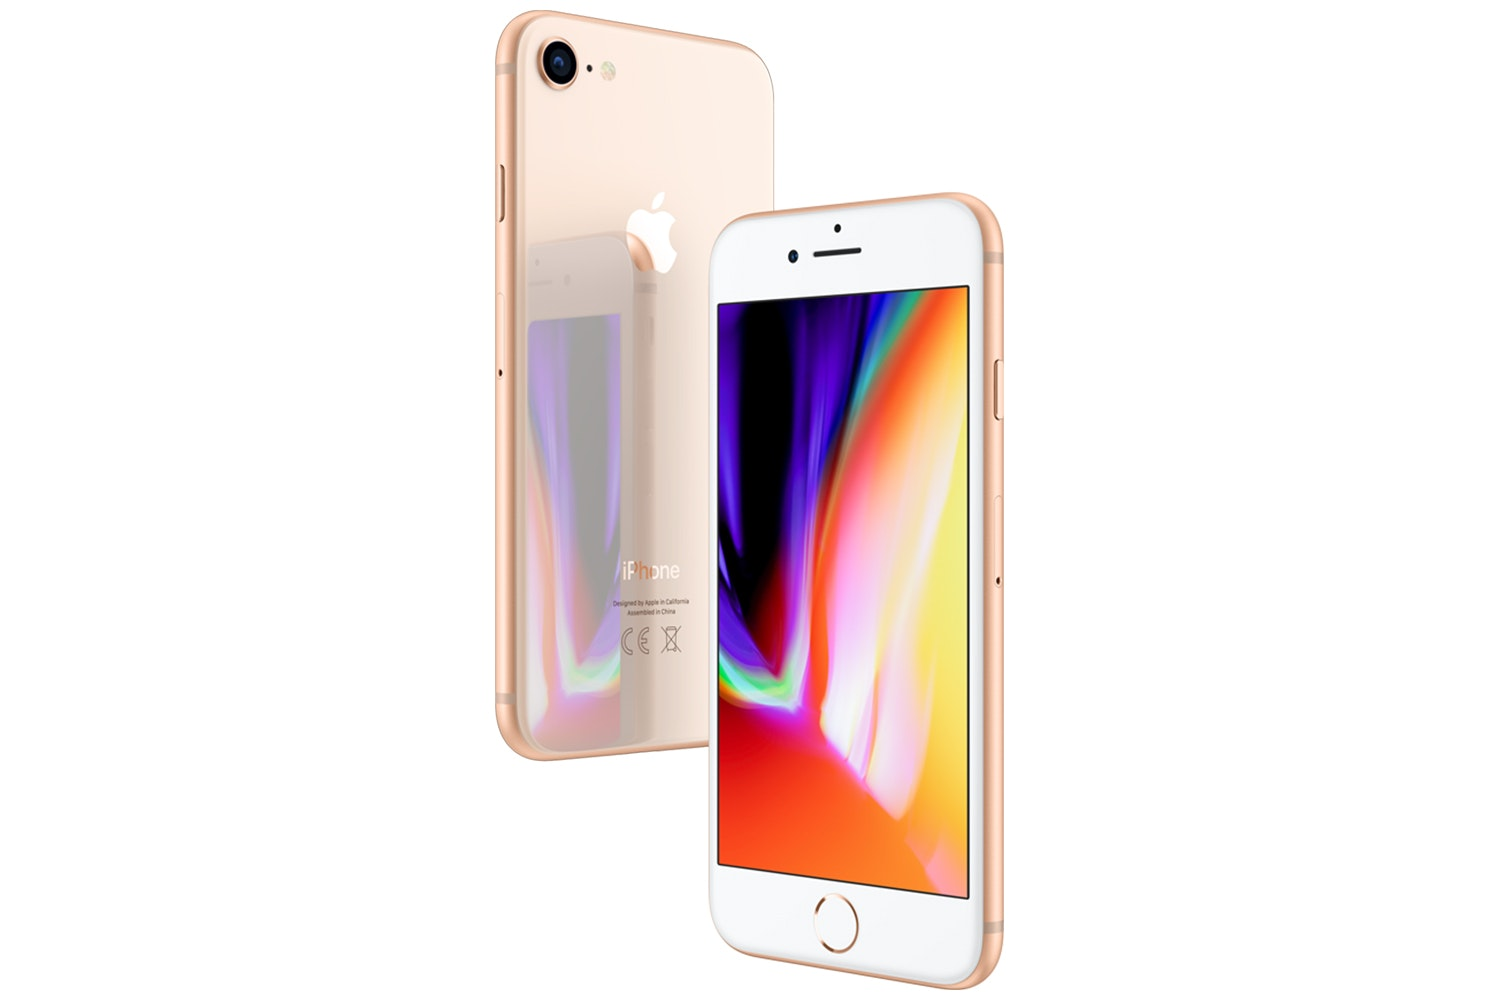 iPhone 8 | 64GB | Gold